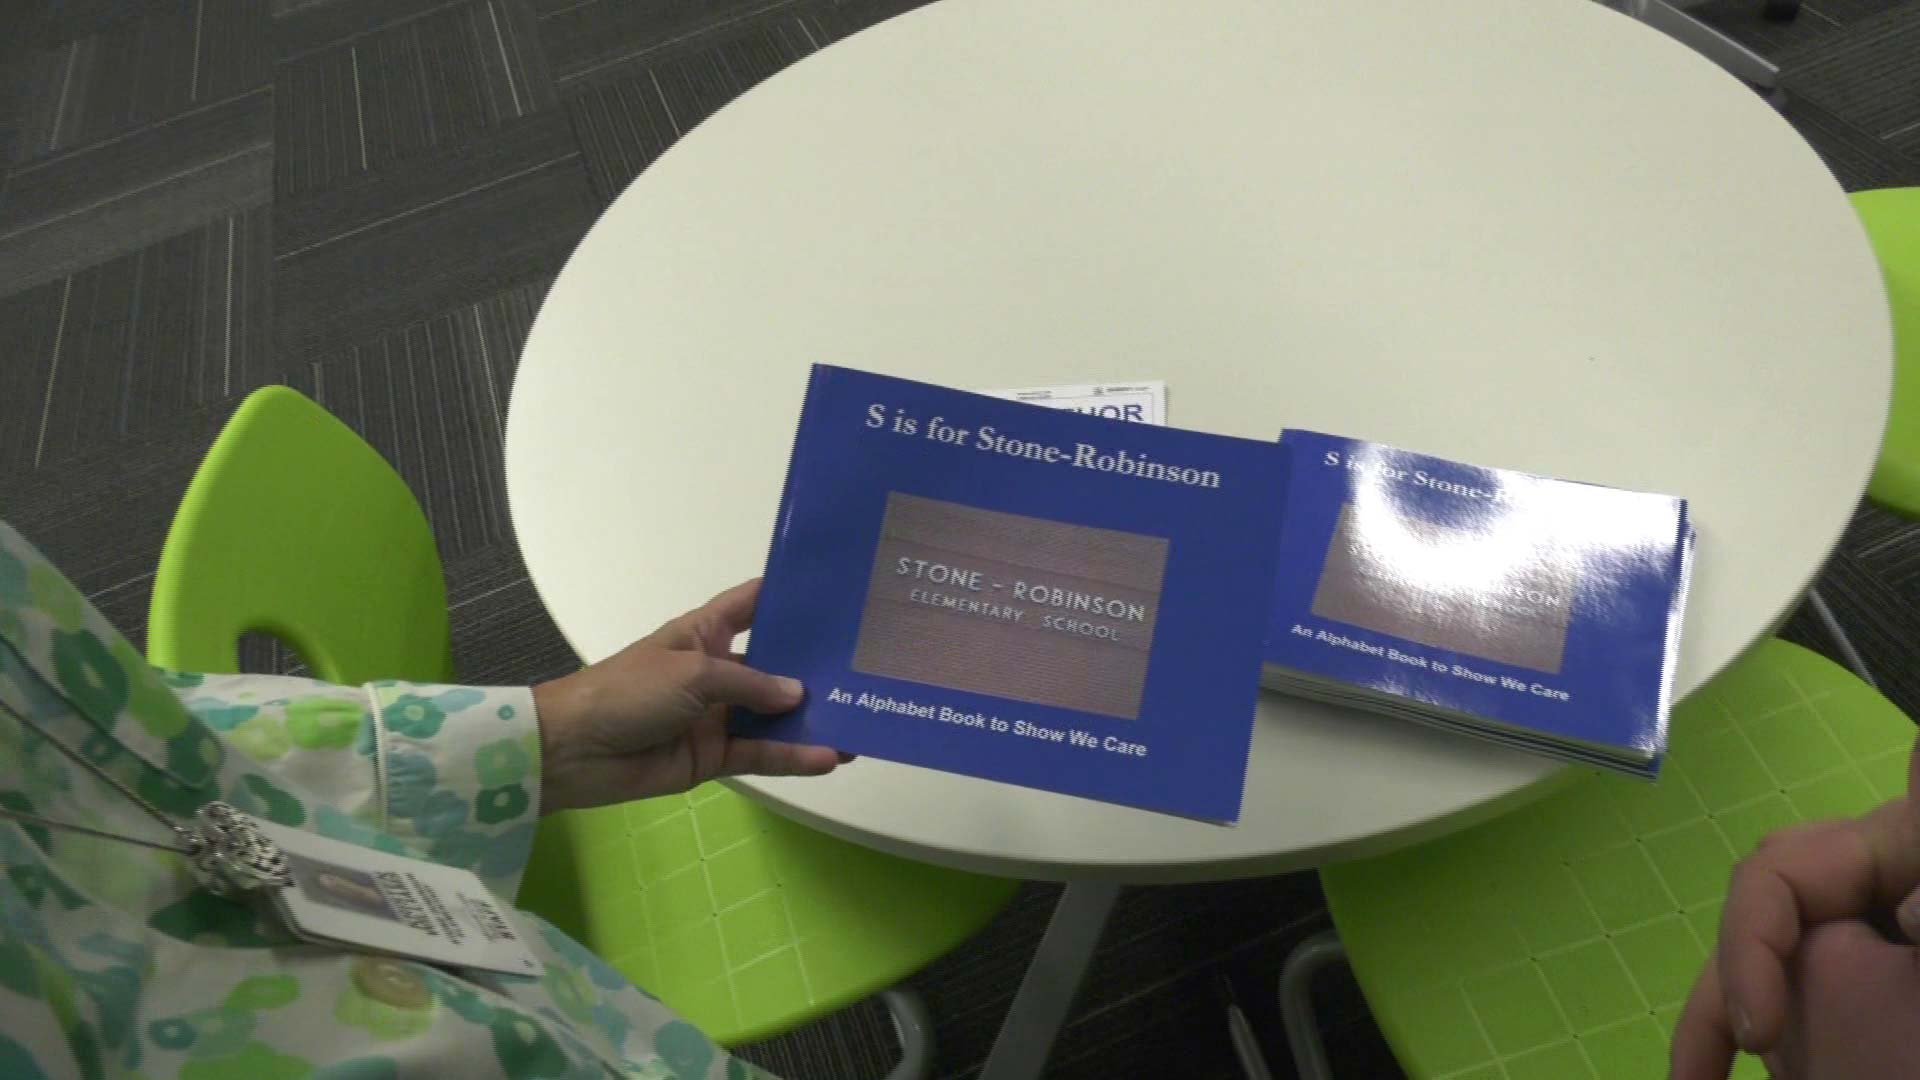 The students published a book to raise funds